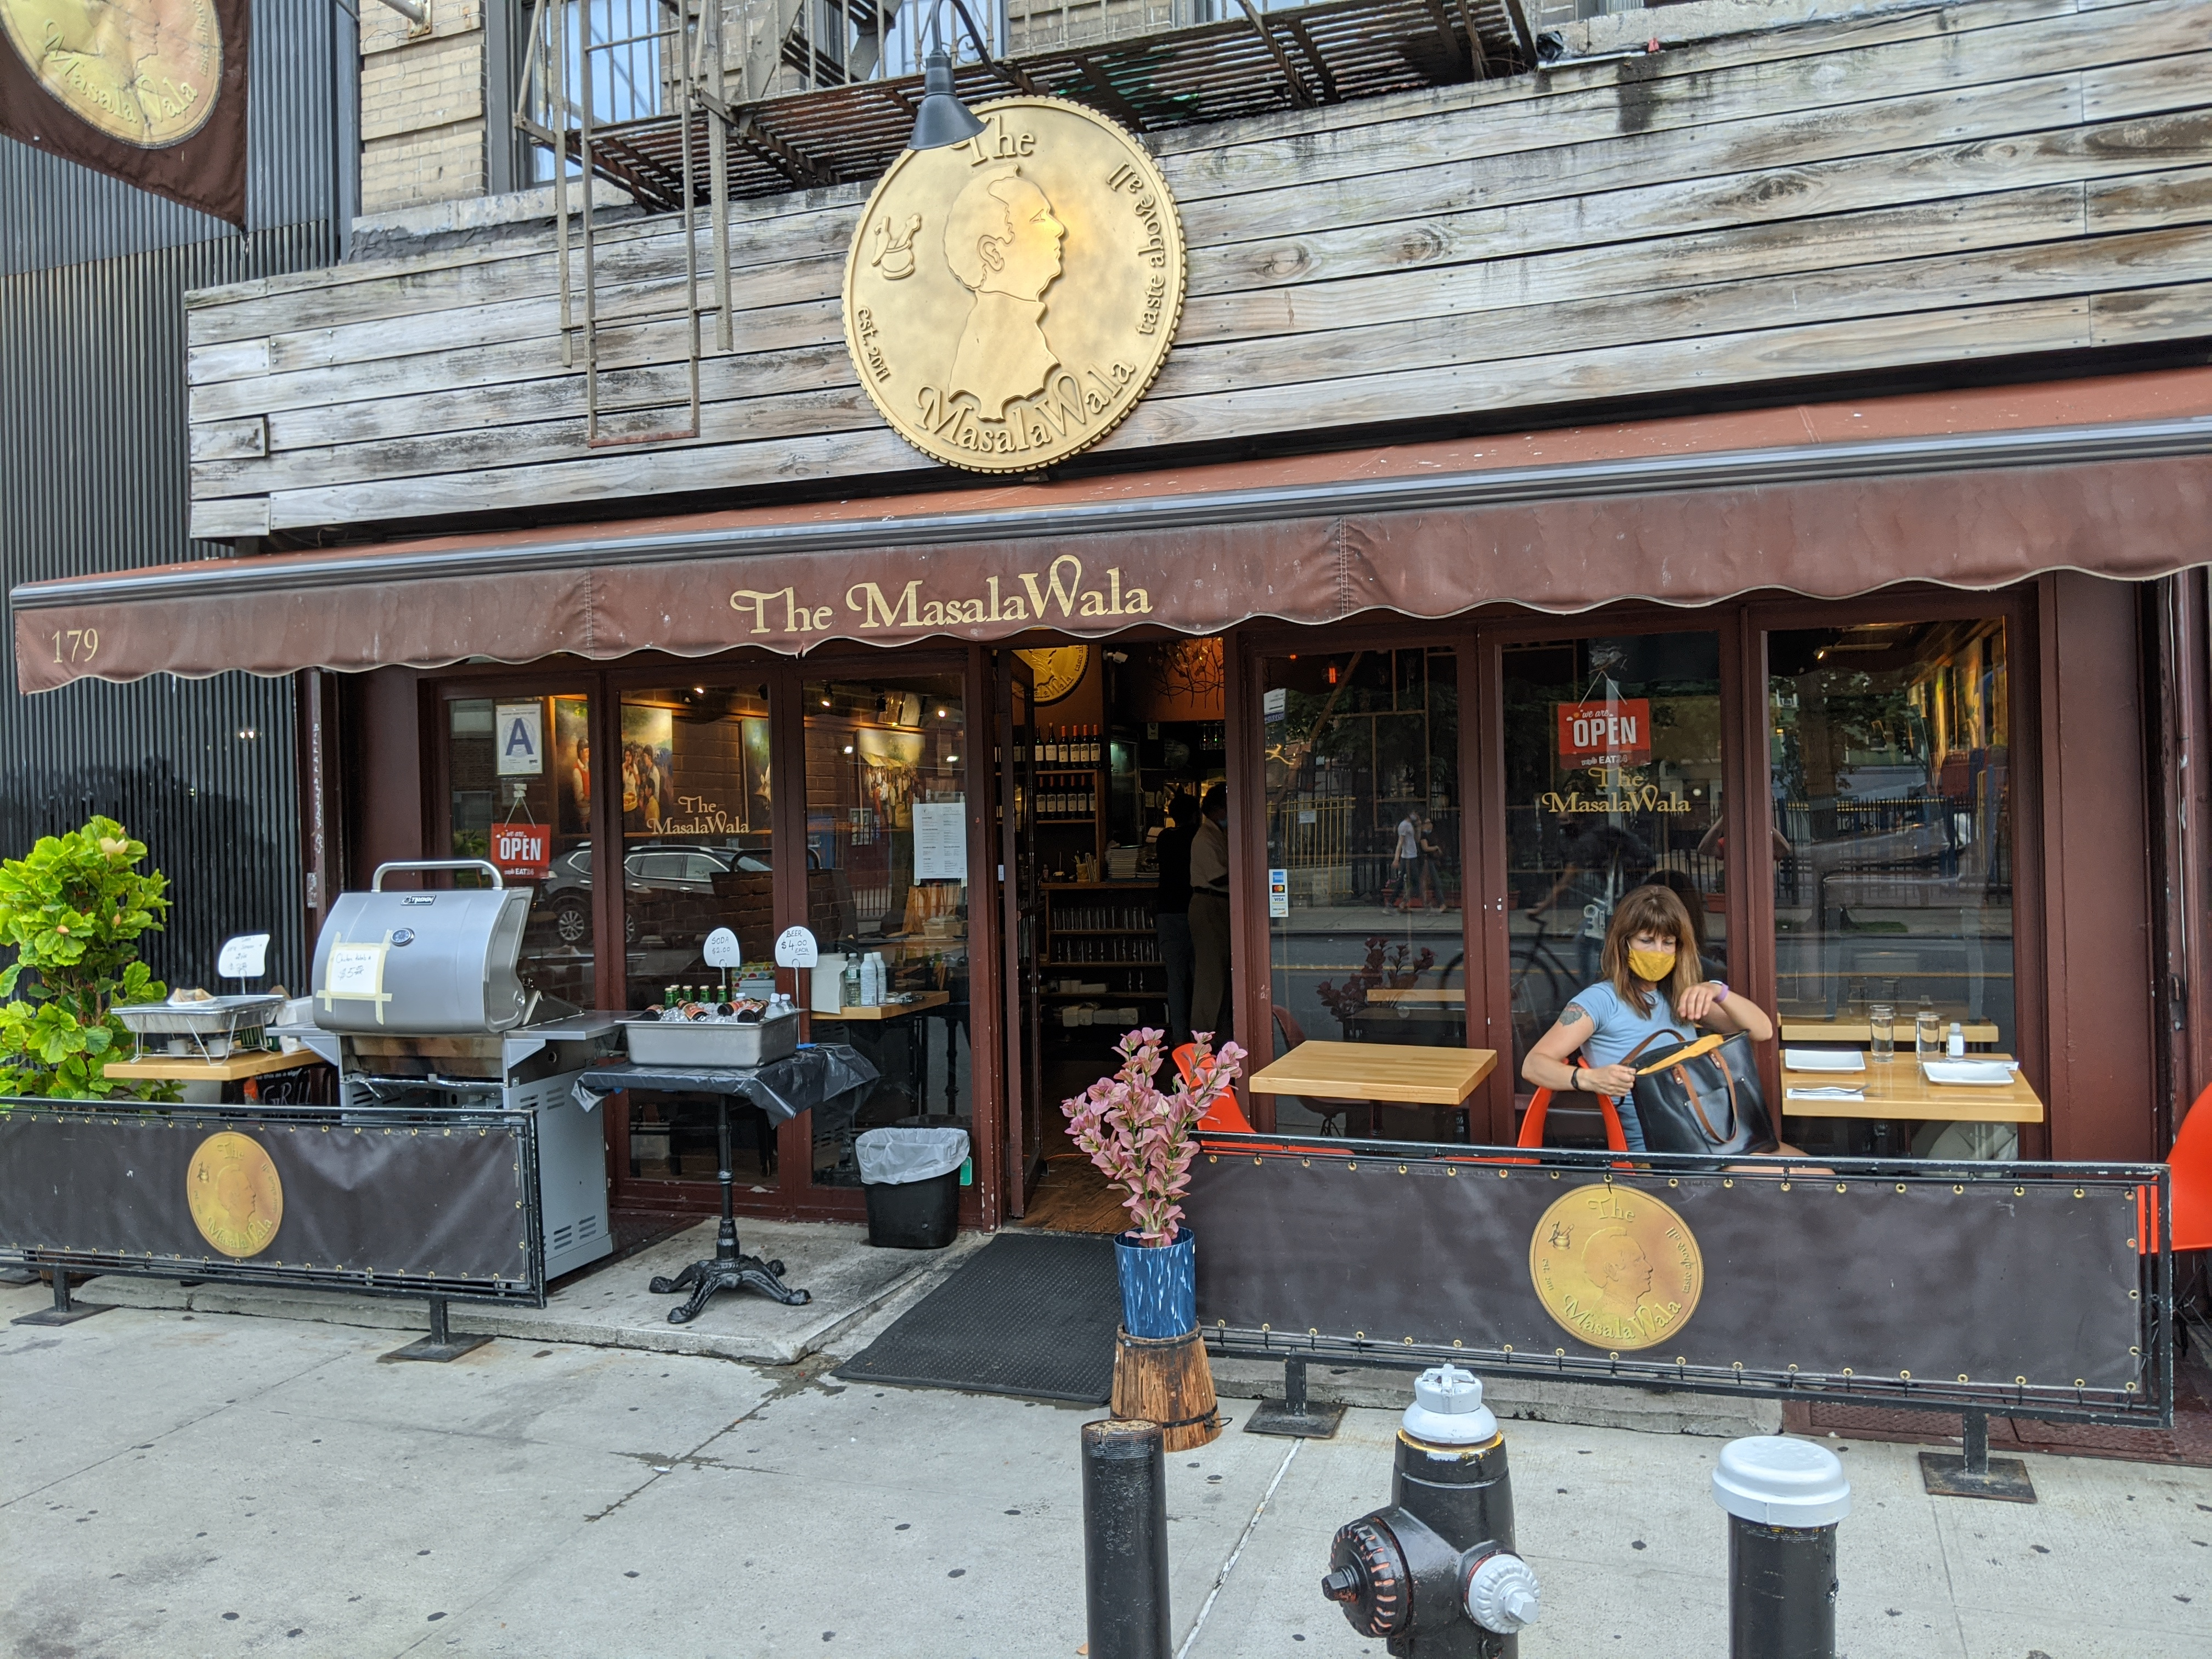 A broad brown storefront with a single customer sitting at a table with a mask.